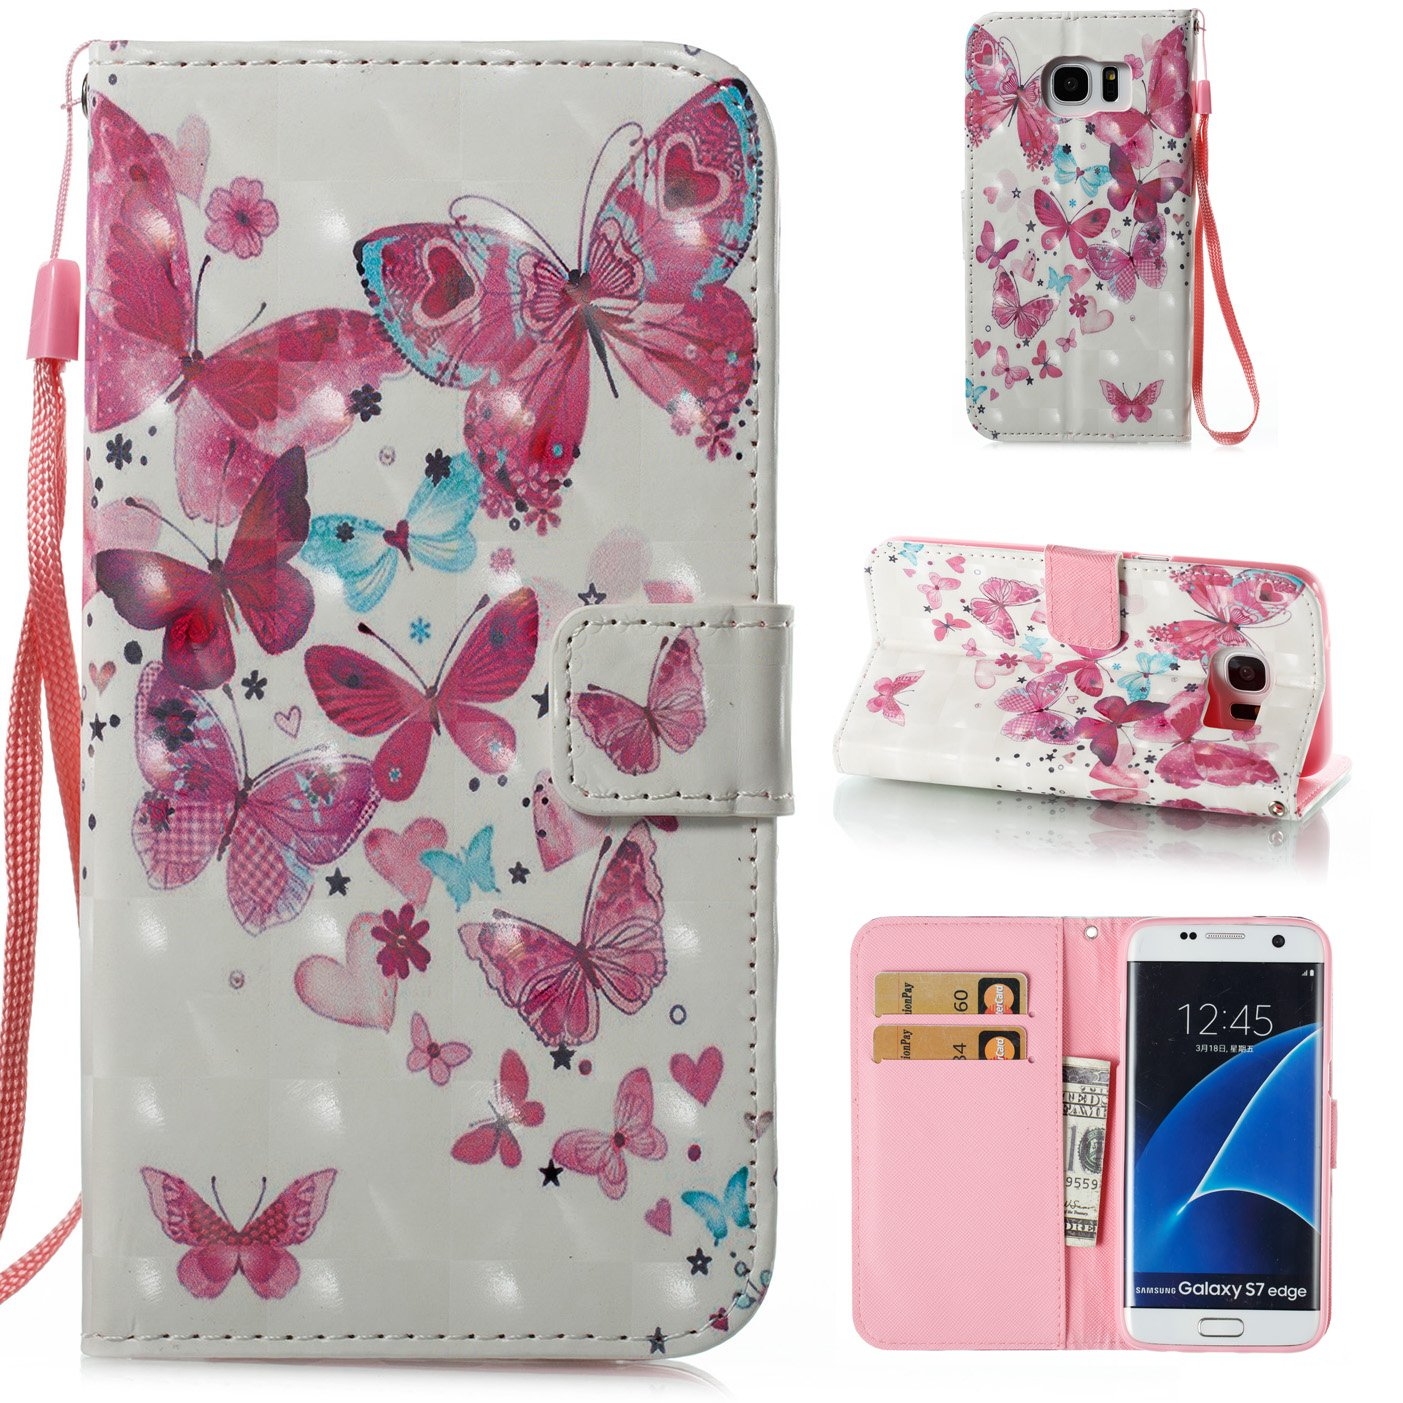 Galaxy S7 Edge 3D Phone Case, Samsung Galaxy S7 Edge Case with Fold Stand Feature, Gostyle Premium PU Leather Wallet Purple Butterfly Painted Pattern Magnetic Flip Cover with Card Slots.